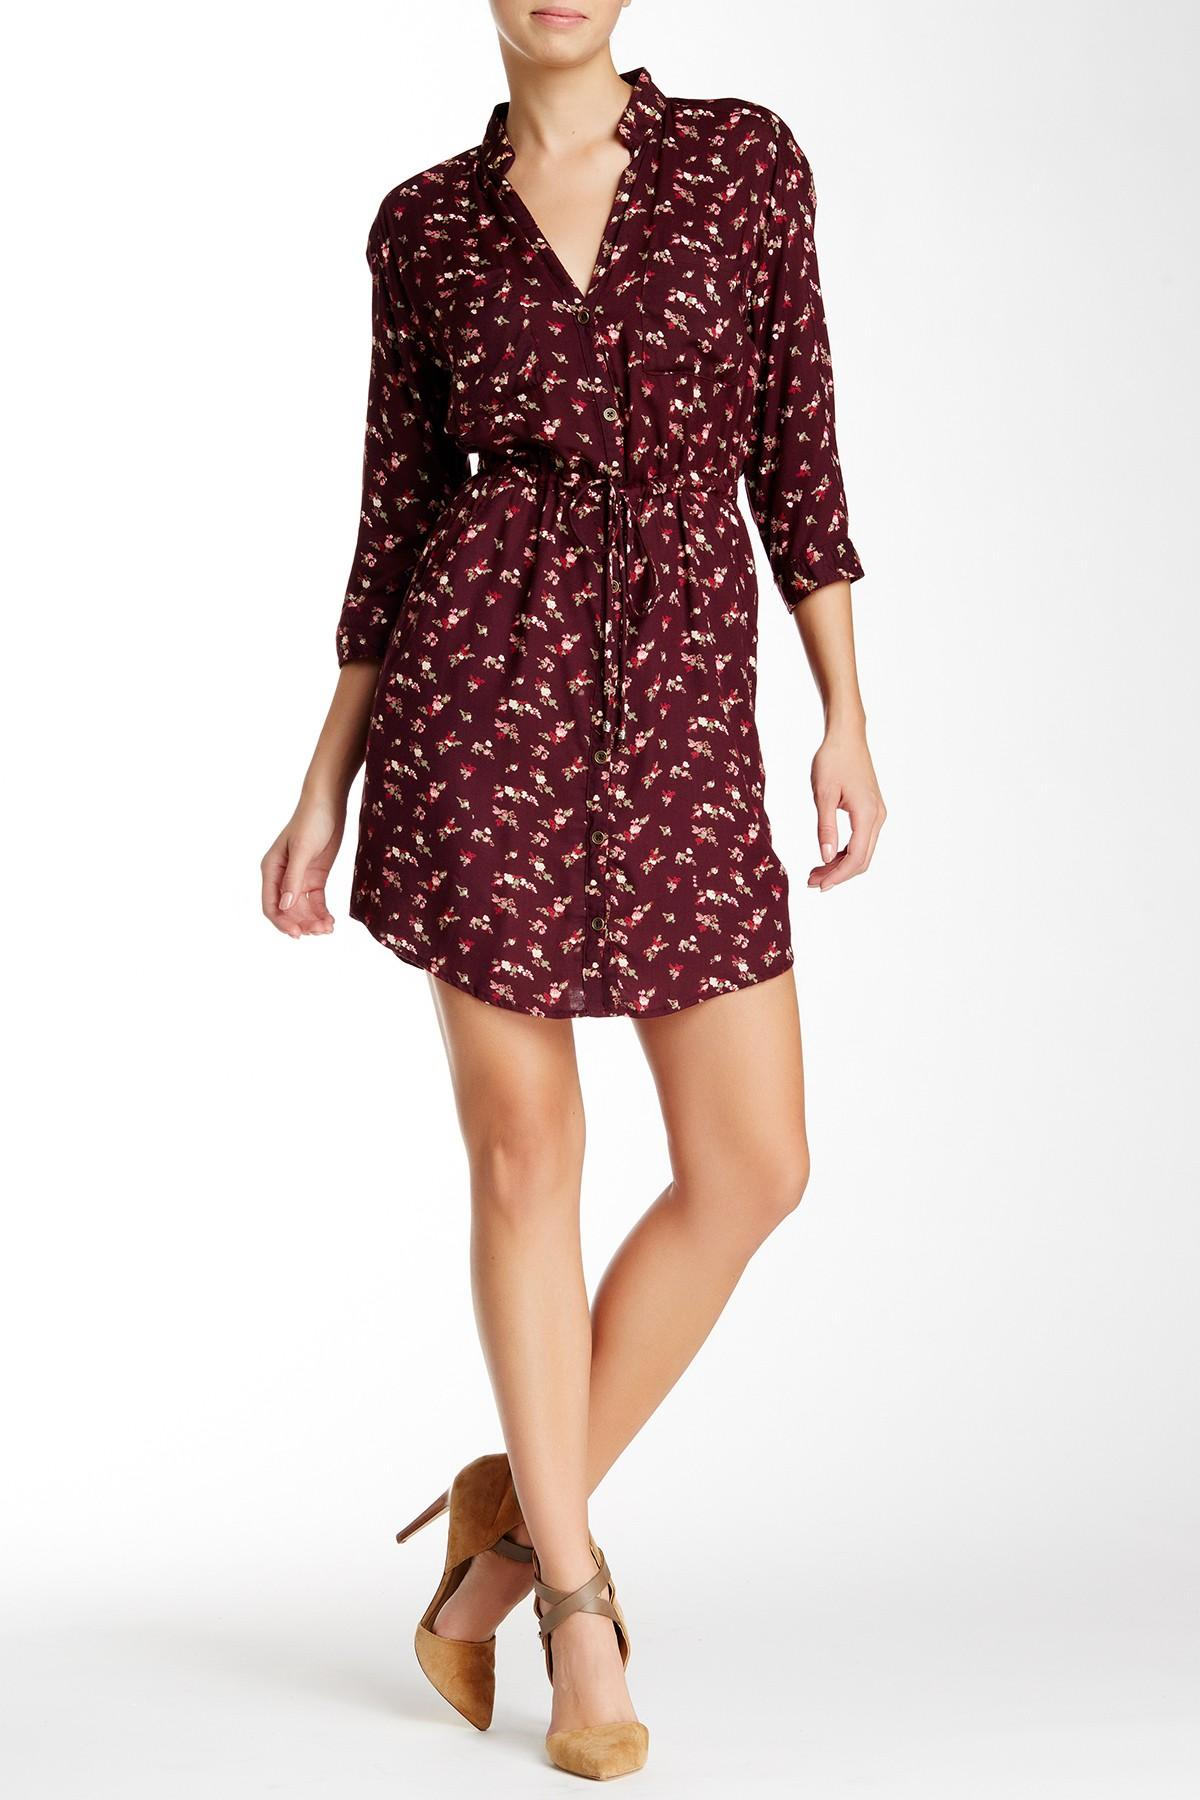 Lyst angie patterned shirt dress in purple for Nordstrom rack dresses pour mariage